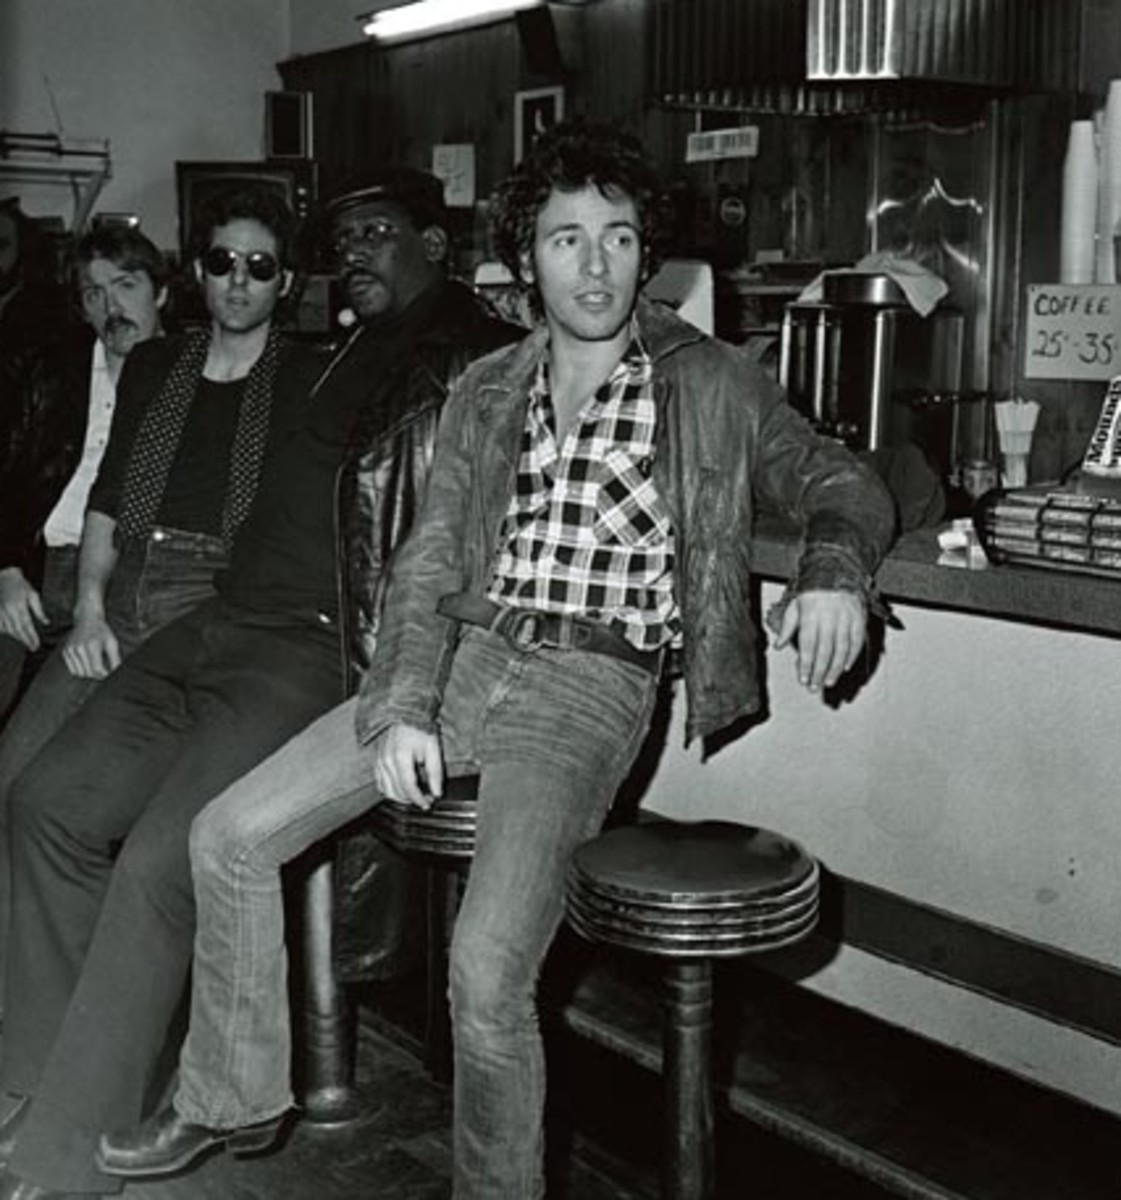 Bruce and the band hanging out in Jersey